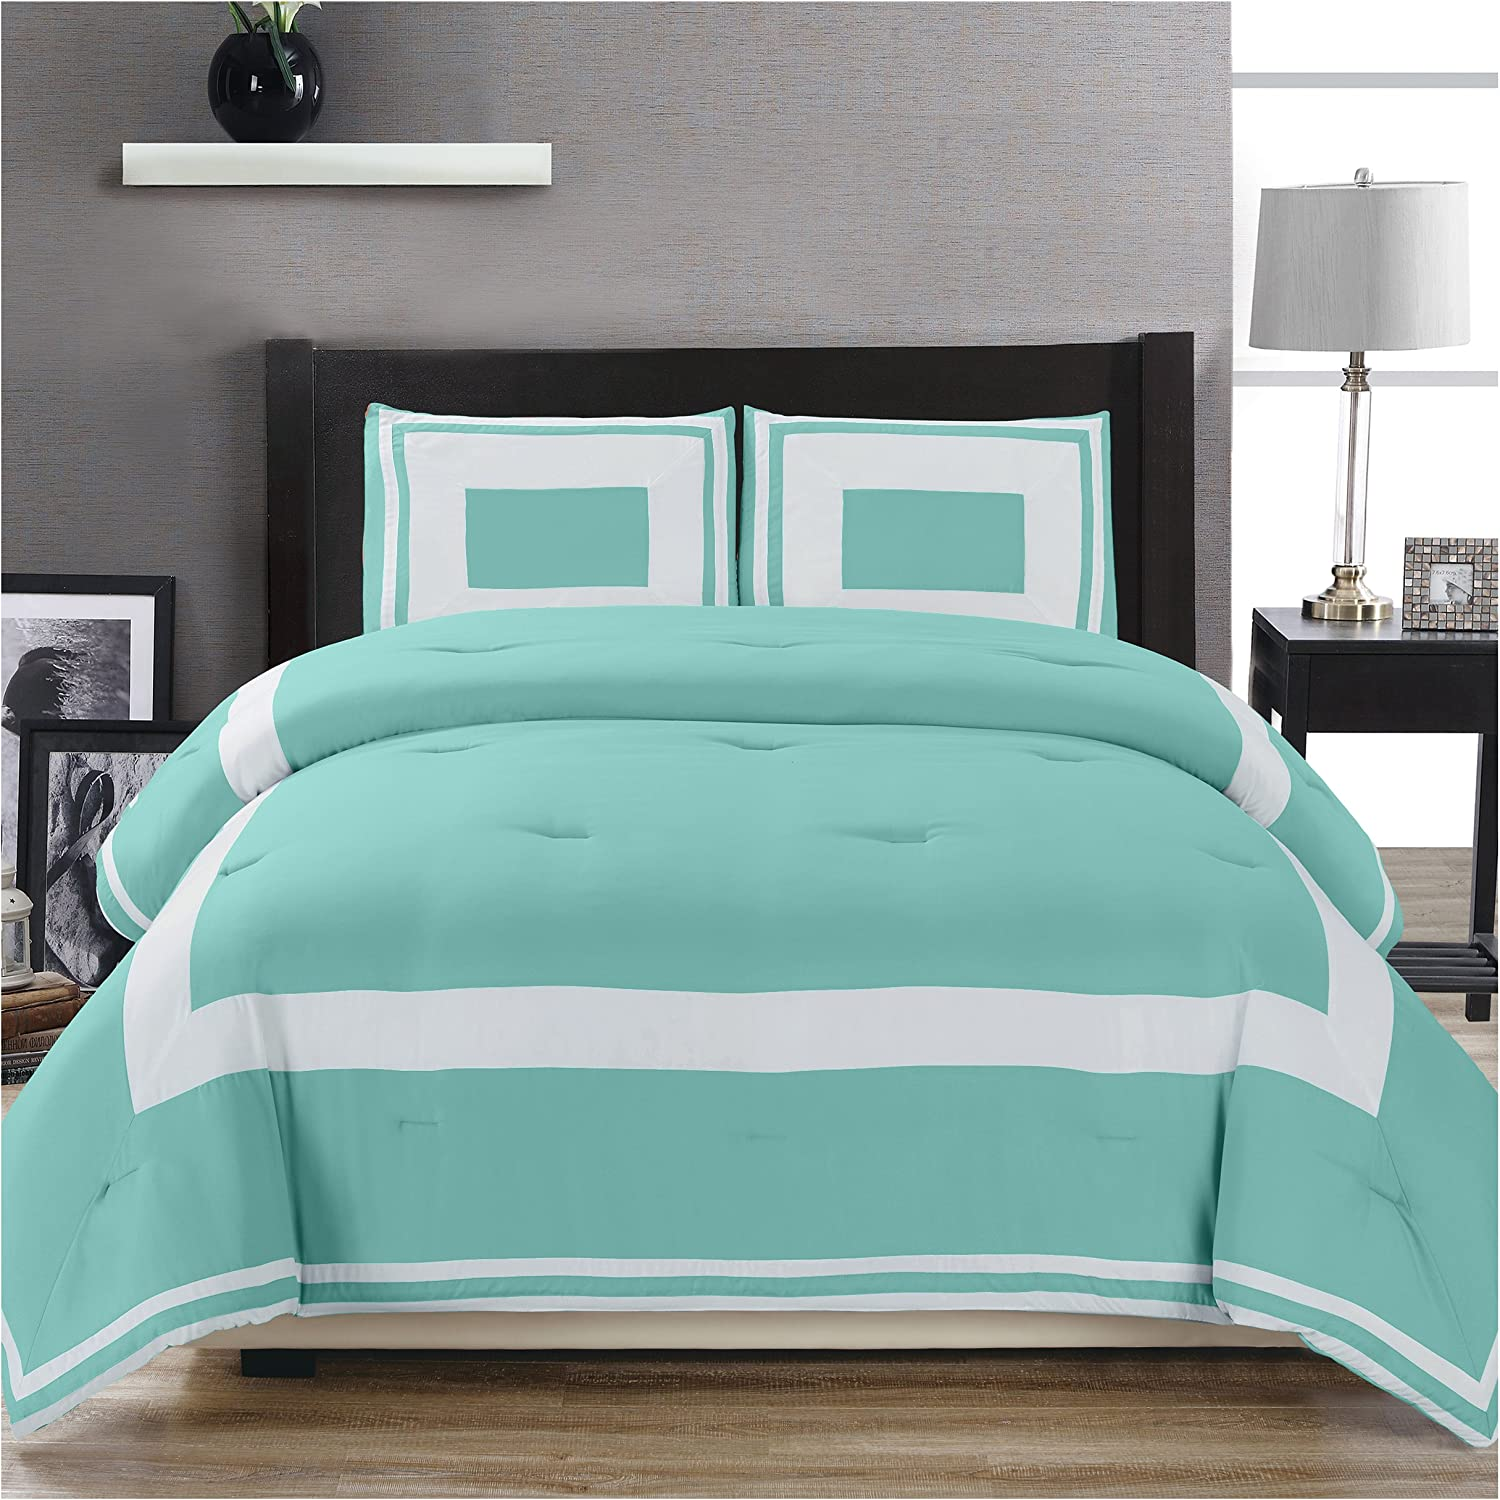 Superior Grammercy color Blocked Comforter Set with Pillow Shams, Luxury Hotel Bedding with Soft Microfiber Shell, All Season Down Alternative Fill - Full Queen, Teal